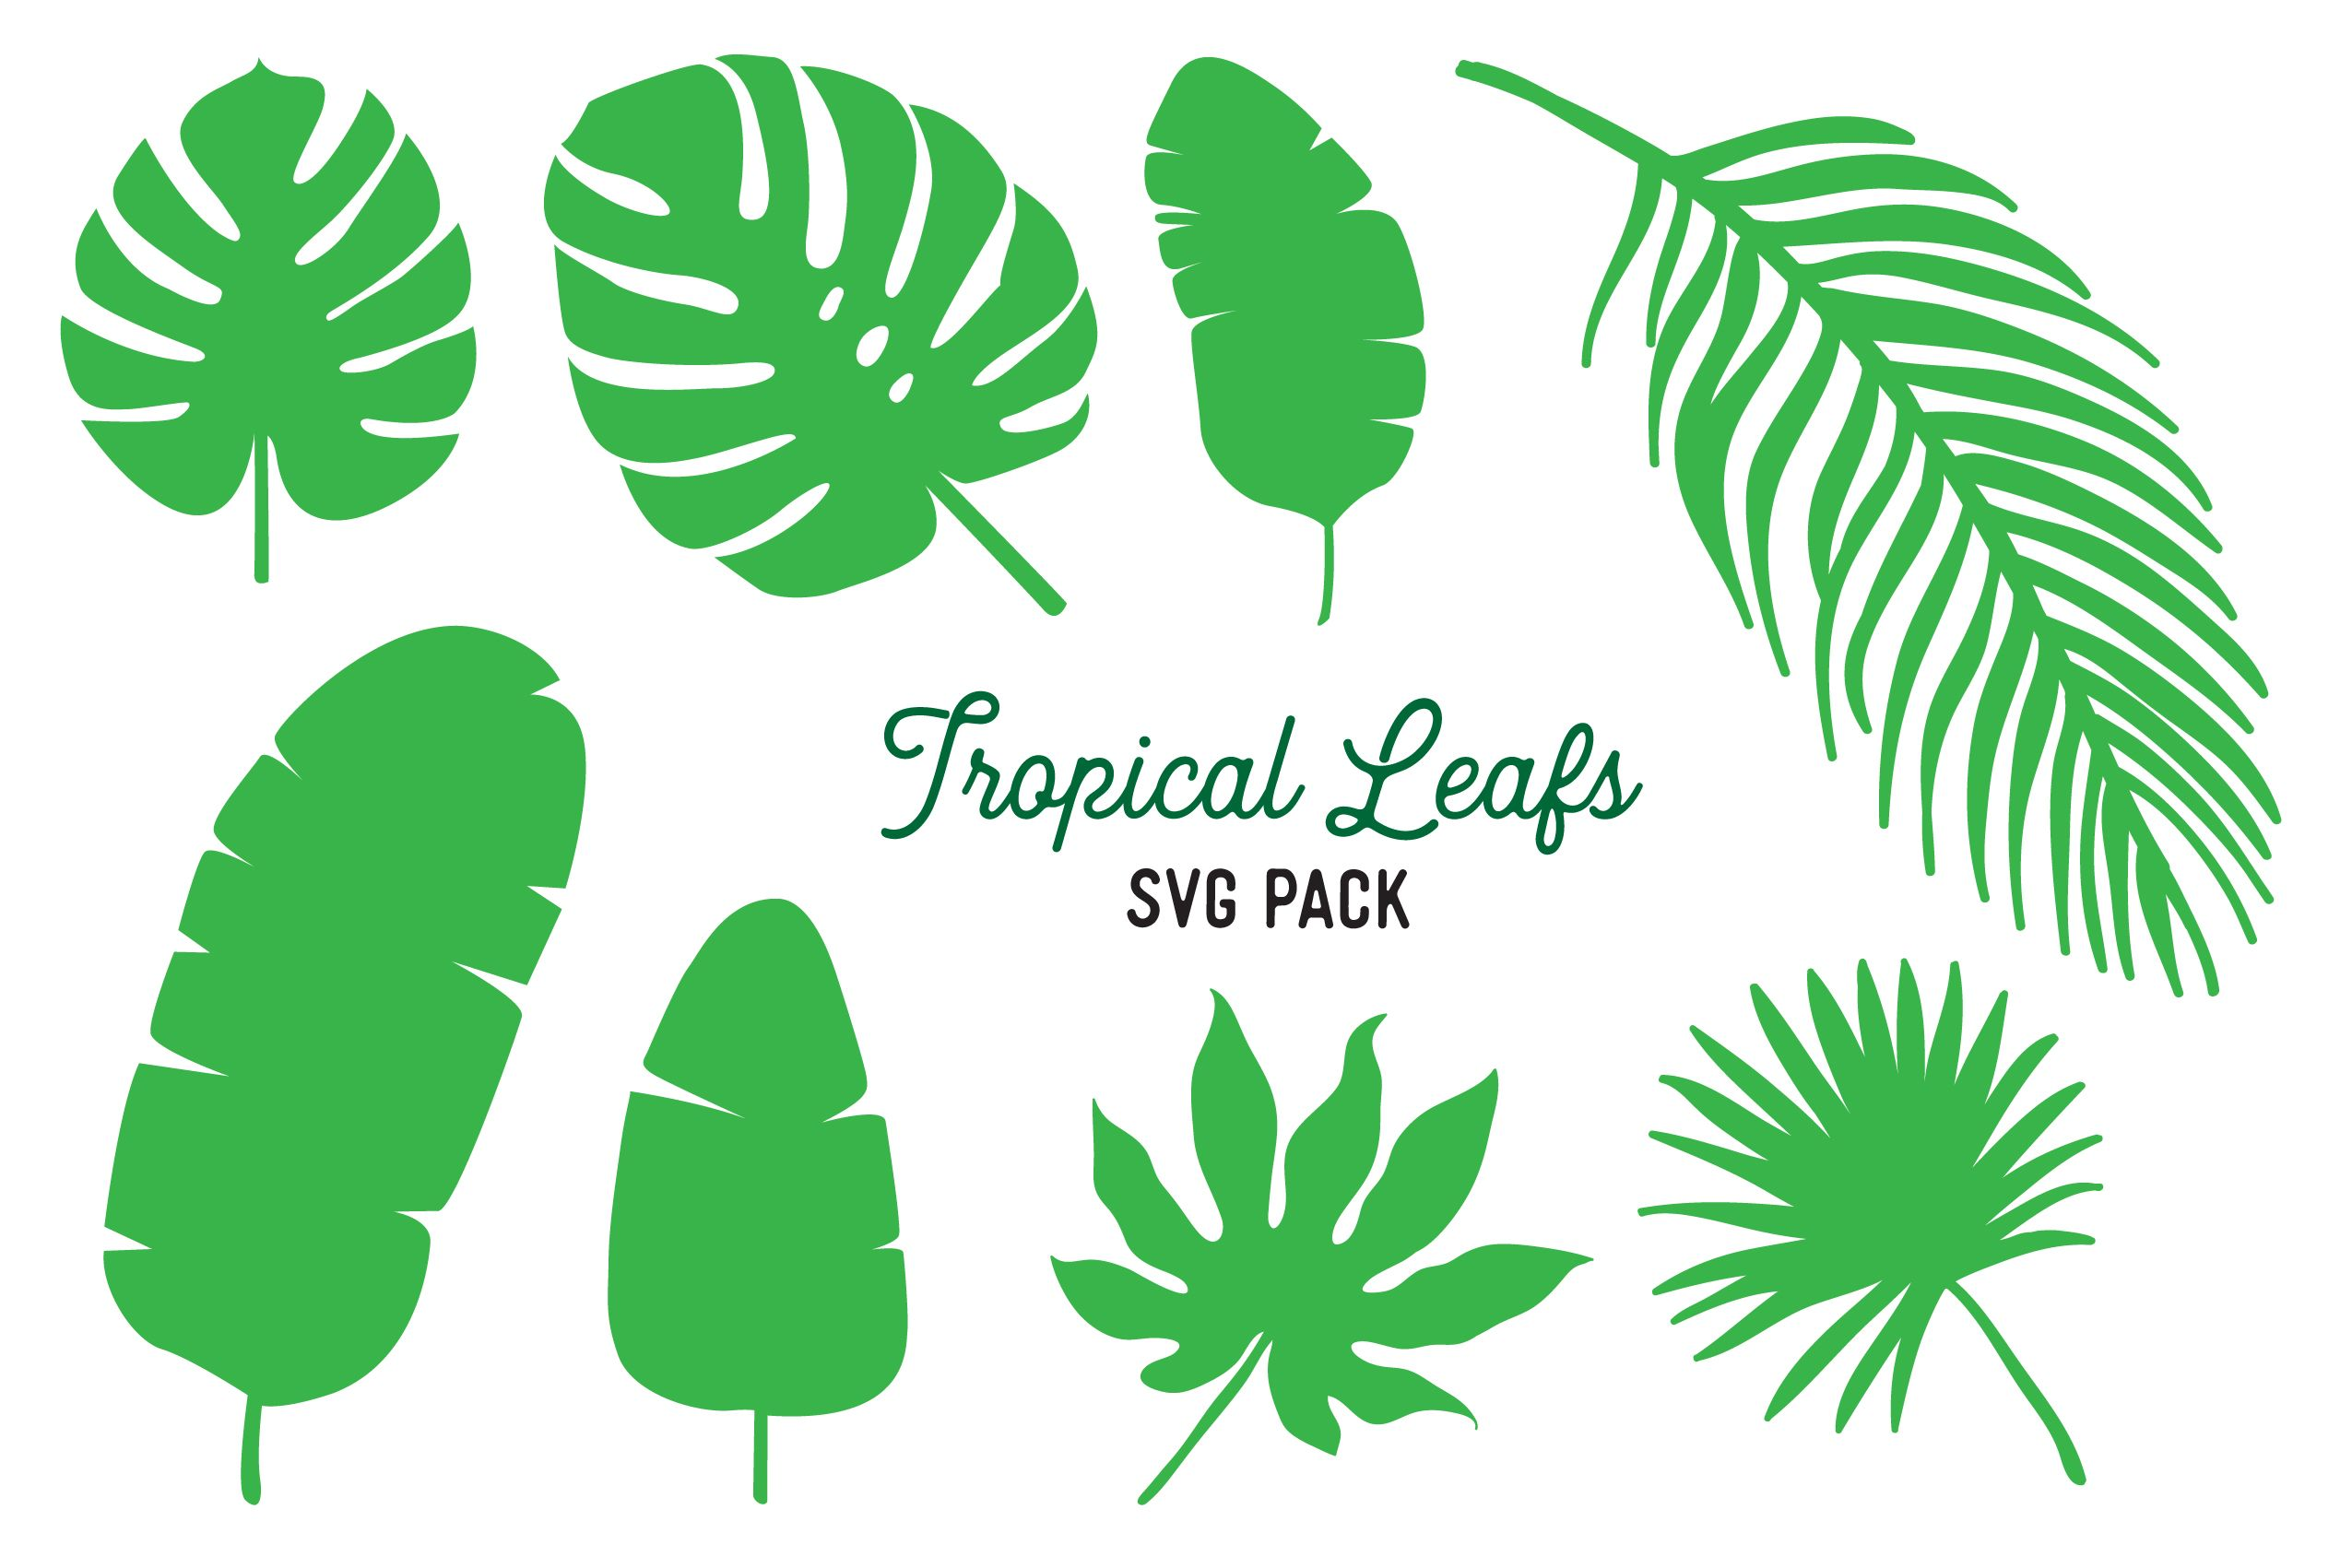 Tropical Leaf SVG Vector Design Bundle (Graphic) by The